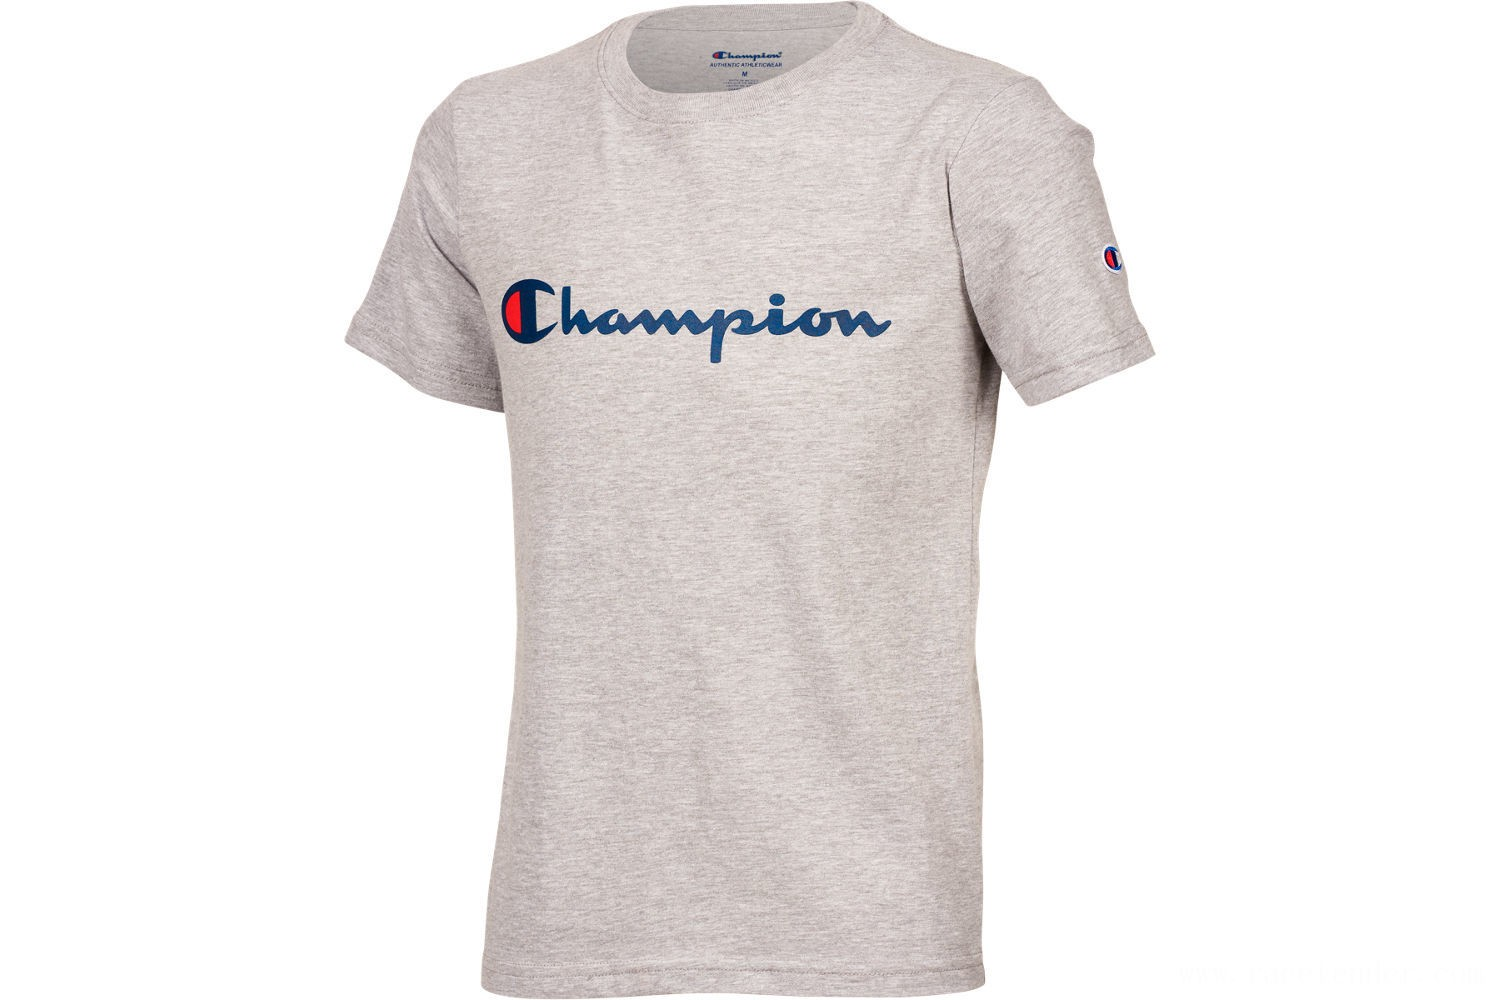 Champion Kids' Heritage T-Shirt - Grey/White